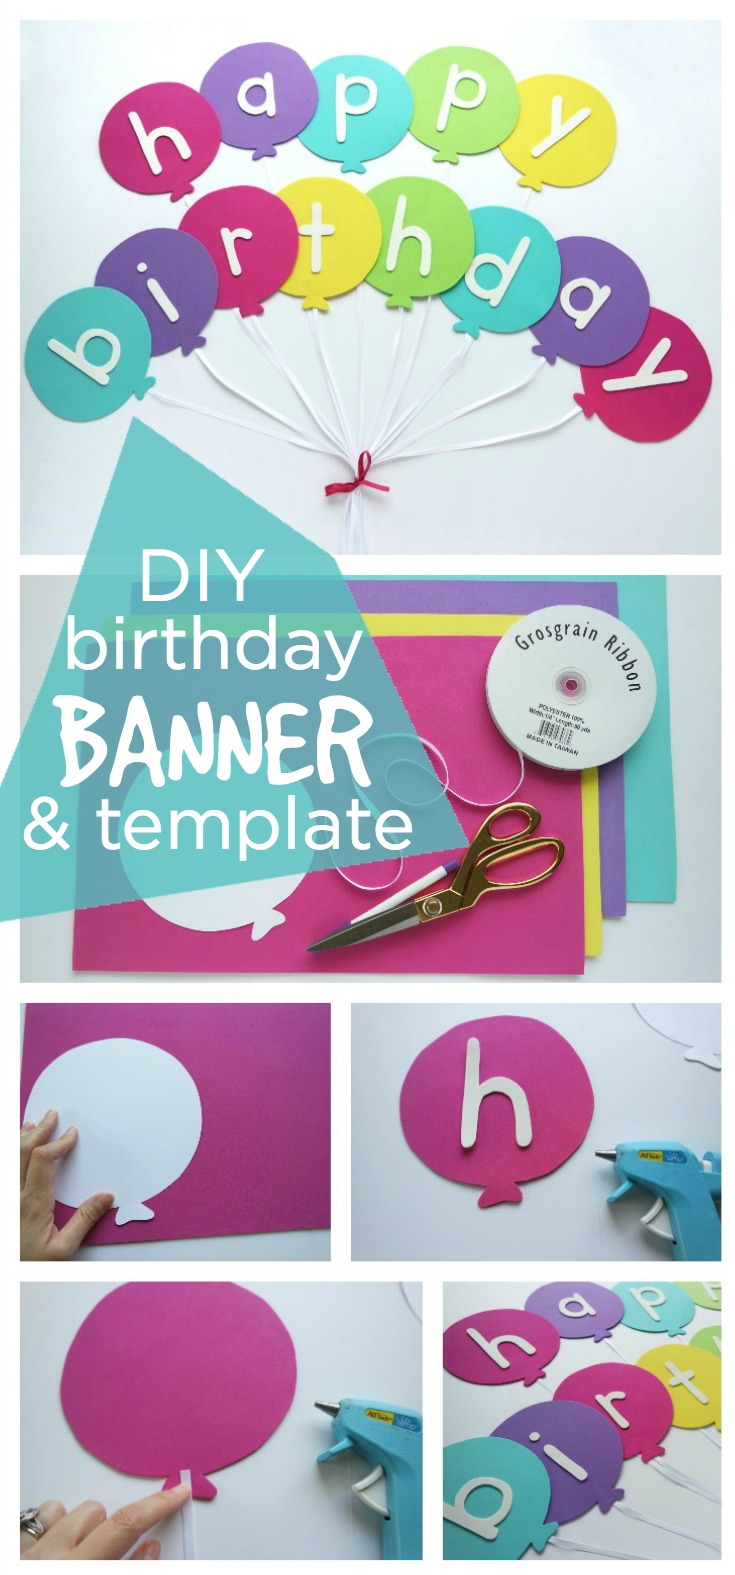 Happy Birthday Banner DIY Template - Festive happy birthday balloon banner with easy steps and a free template. Perfect fit with ANY birthday party theme!